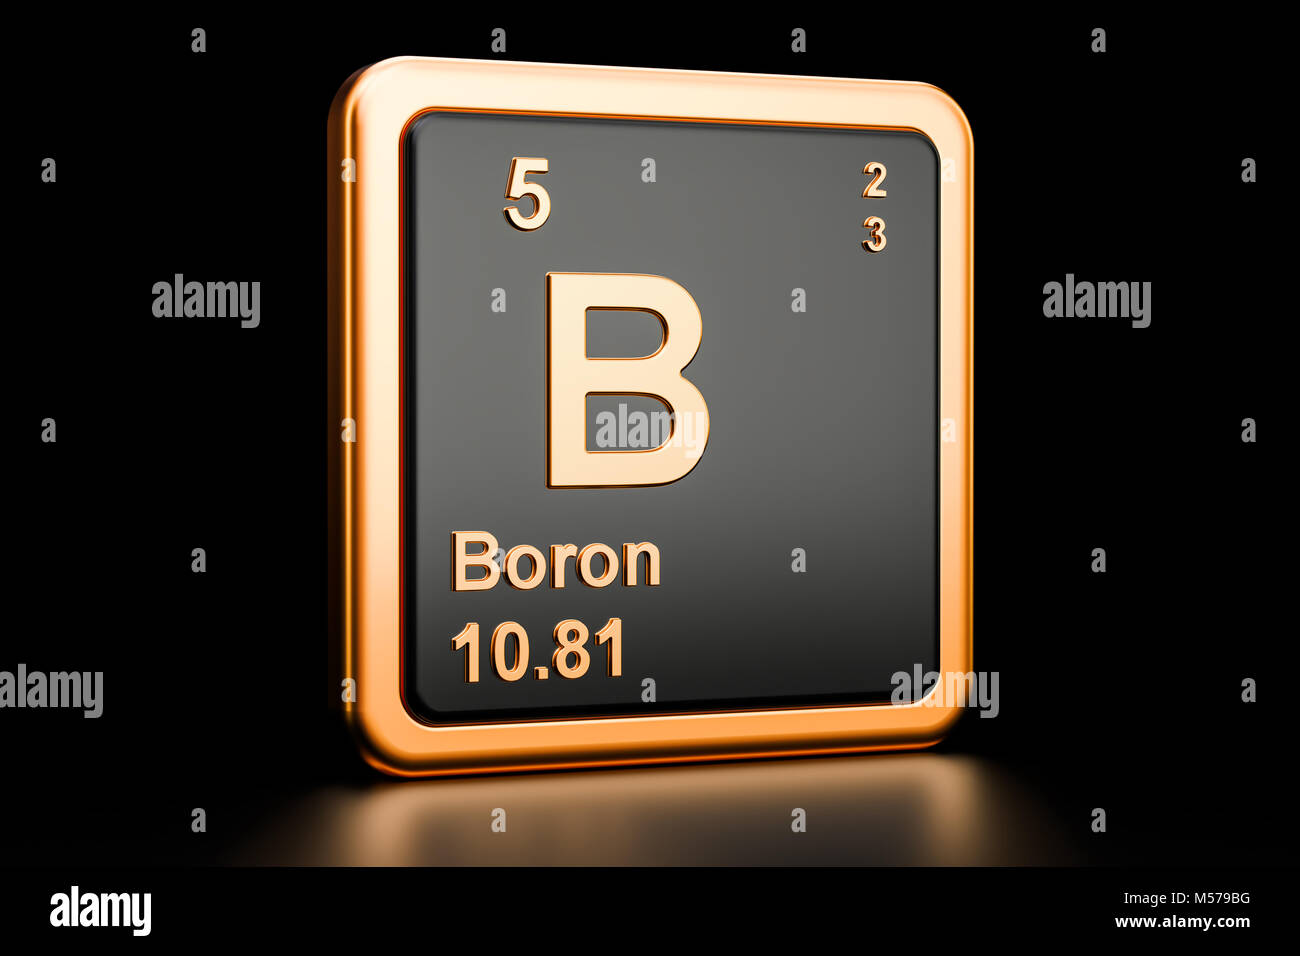 Symbol chemical element boron stock photos symbol chemical boron b chemical element 3d rendering isolated on black background stock image buycottarizona